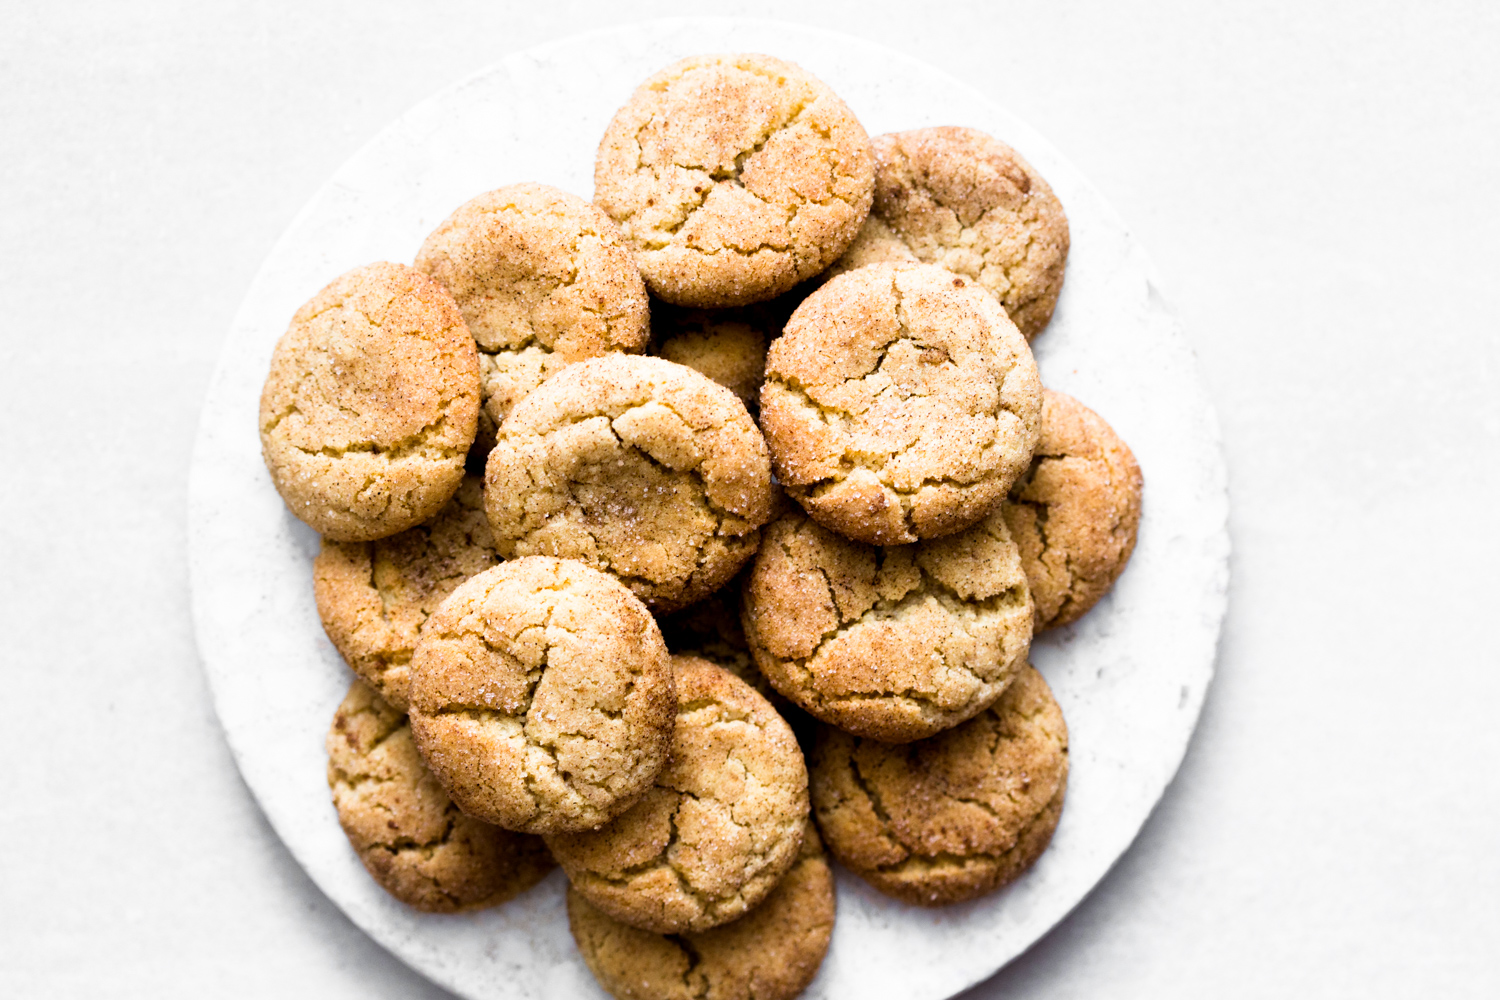 Delicious Vegan Snickerdoodles that are chewy, coated in liberal amounts of cinnamon sugar and ready in under 1 hour. Guaranteed to give you a hard on. #cookies #snickerdoodle #vegansnickerdoodles #vegancookies #snickerdoodles #recipe #soft #dairyfree #baking #easy #simple #eggless